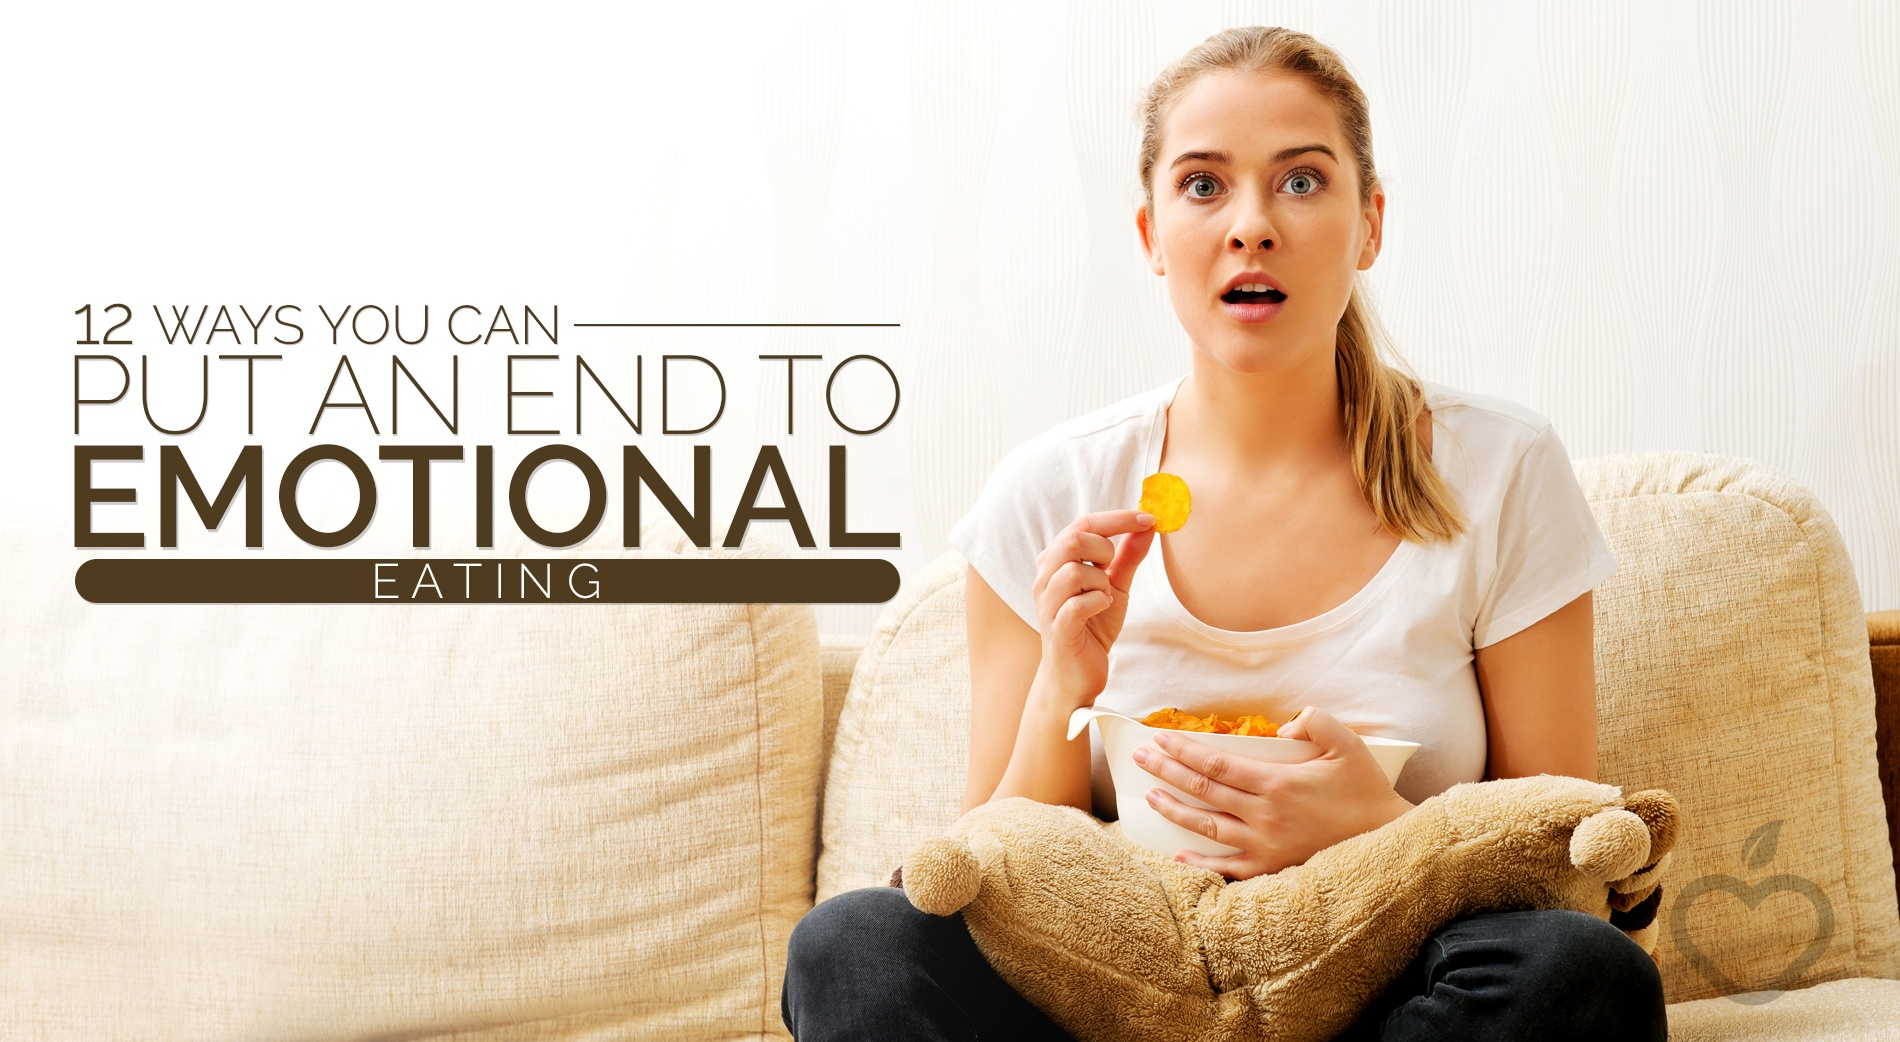 nutrition and stress eating essay Eating the wrong foods: due partially to increased levels of cortisol, the stress hormone, stressed people tend to crave foods high in fat, sugar, and salt many will turn to potato chips, ice cream or other junk foods after a rough day.